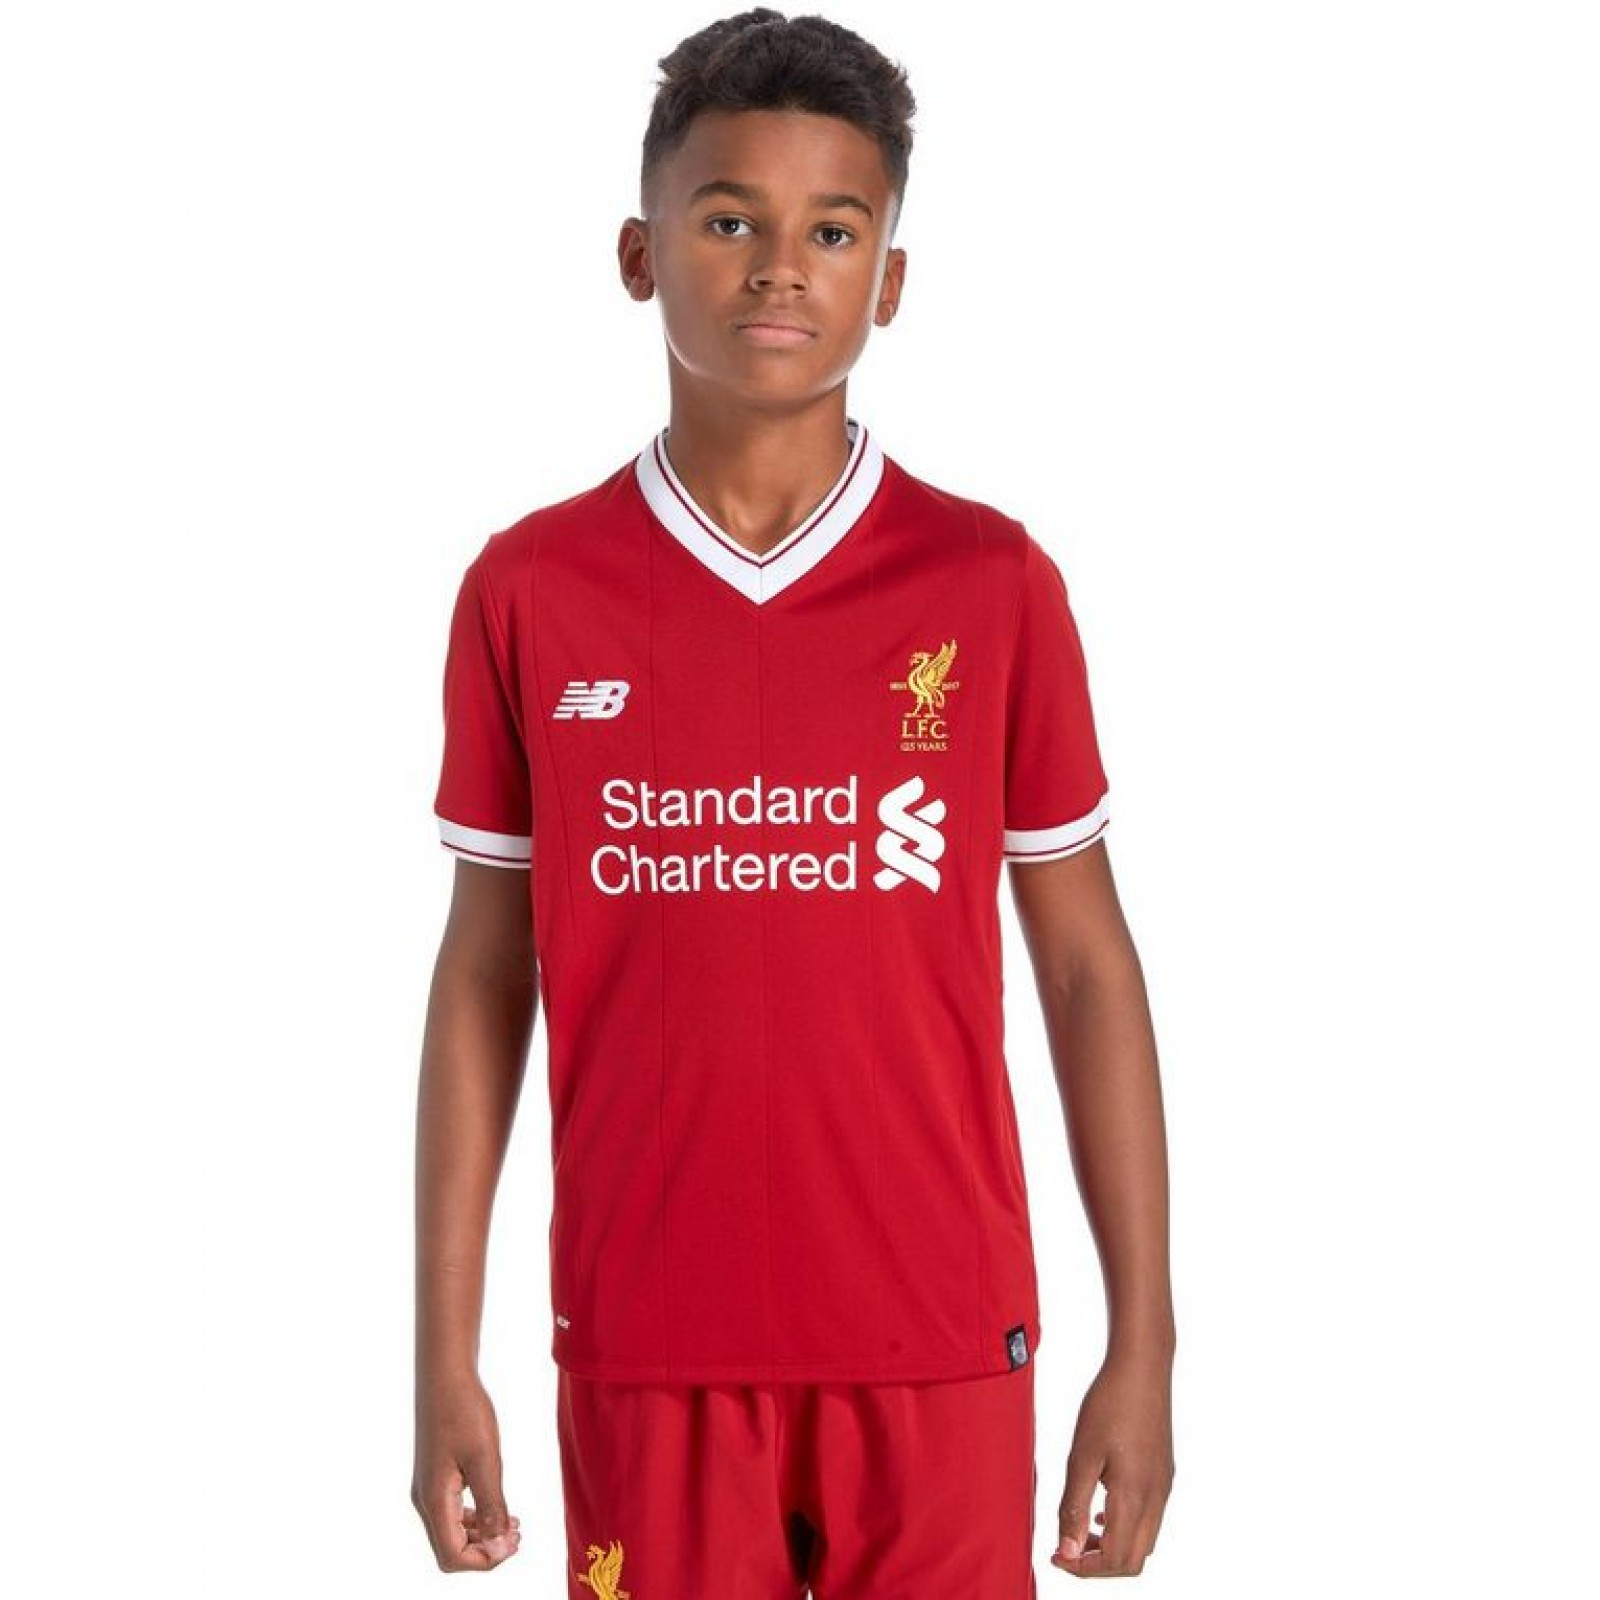 check out 724c4 20a4c Childrens Liverpool Home Kit 2017/18 with Free Shirt ...